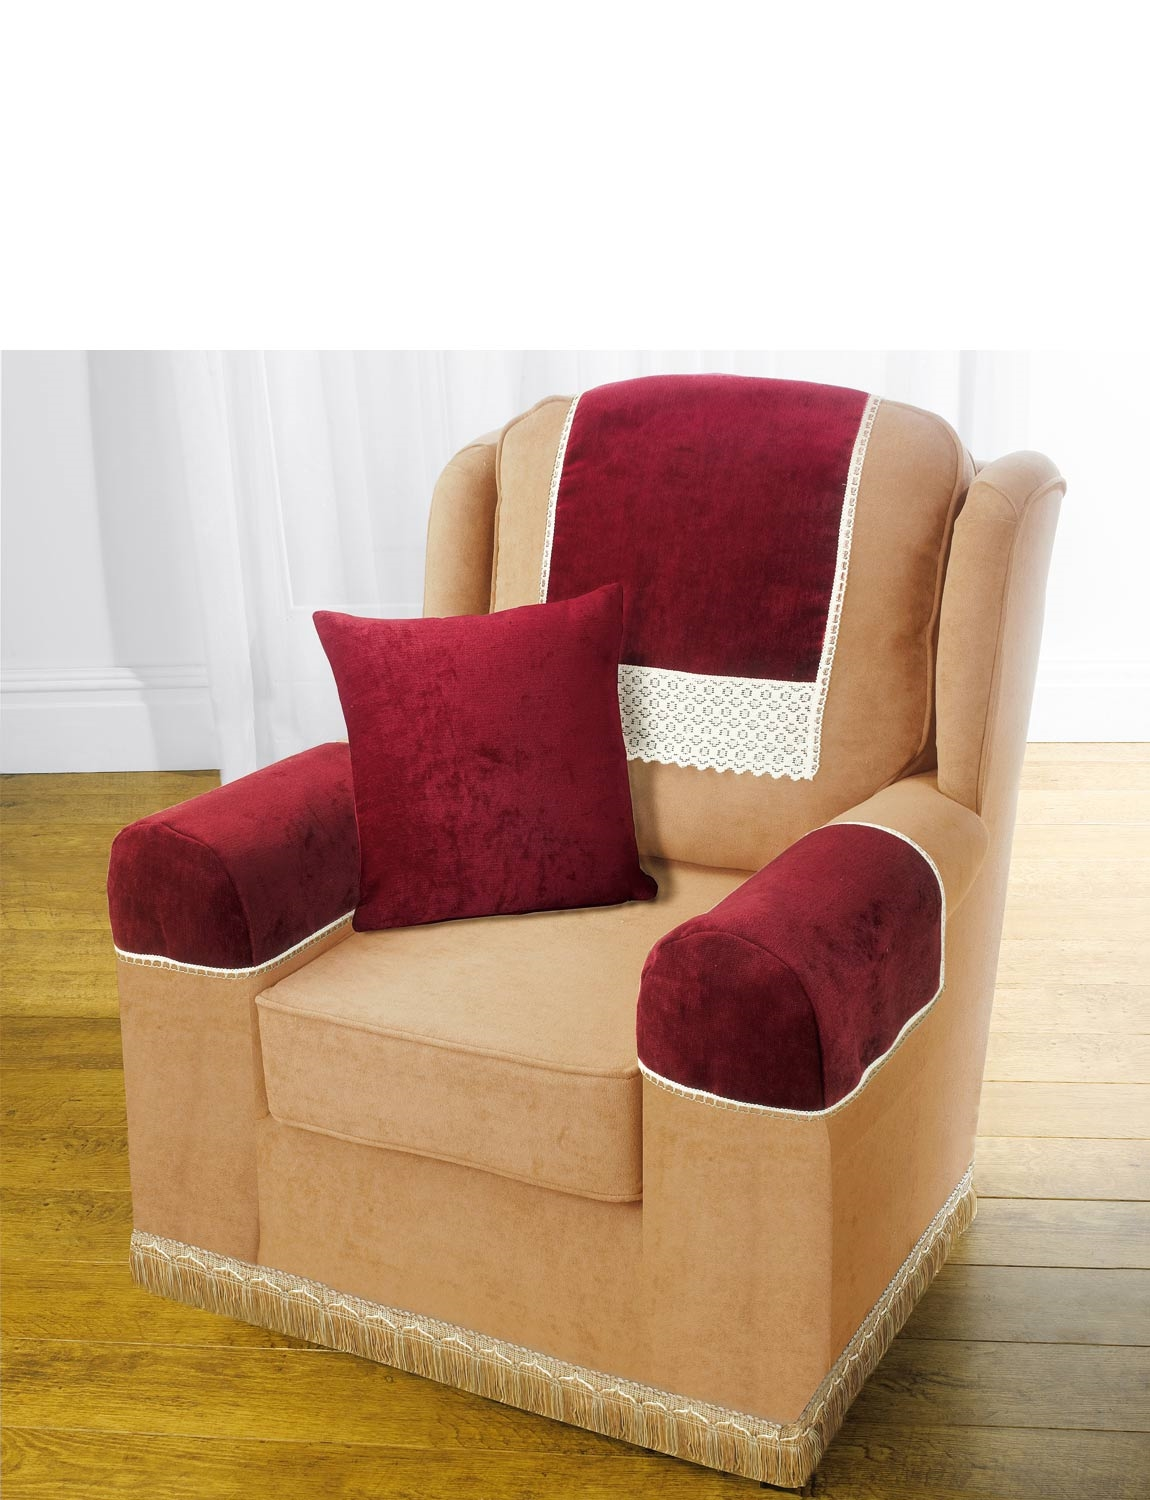 Chenille Furniture Accessories - Home Living Room